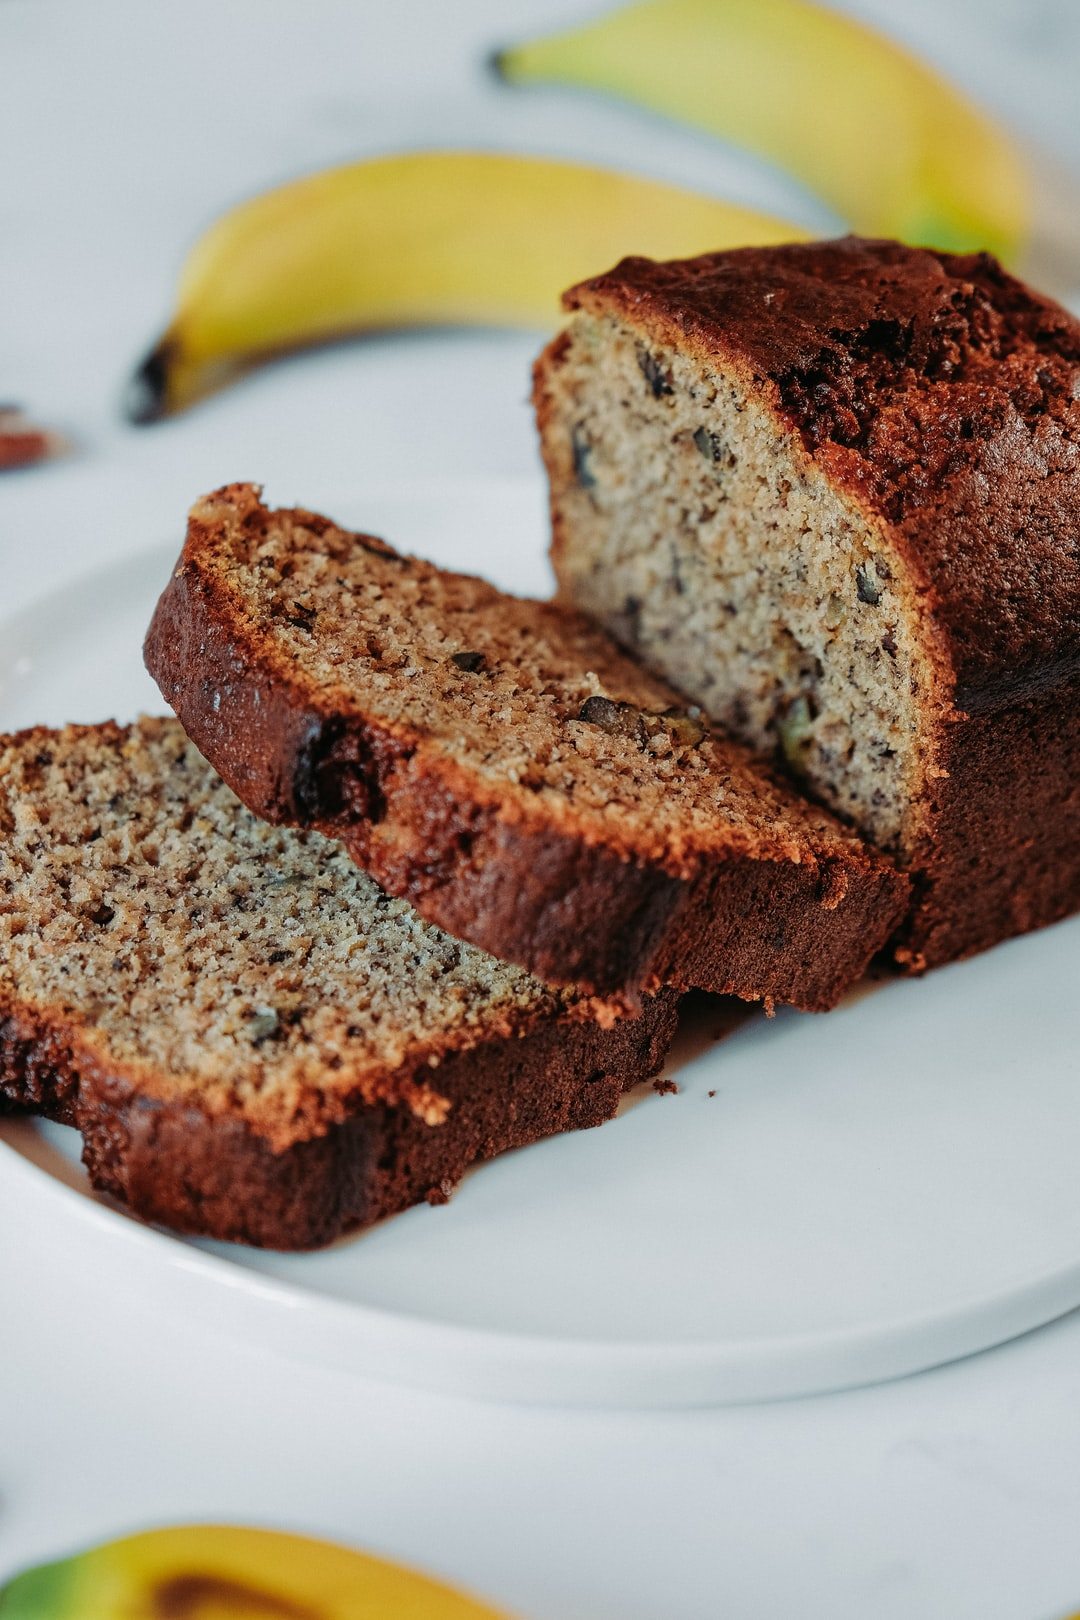 Banana Nut Bread (GF Option)